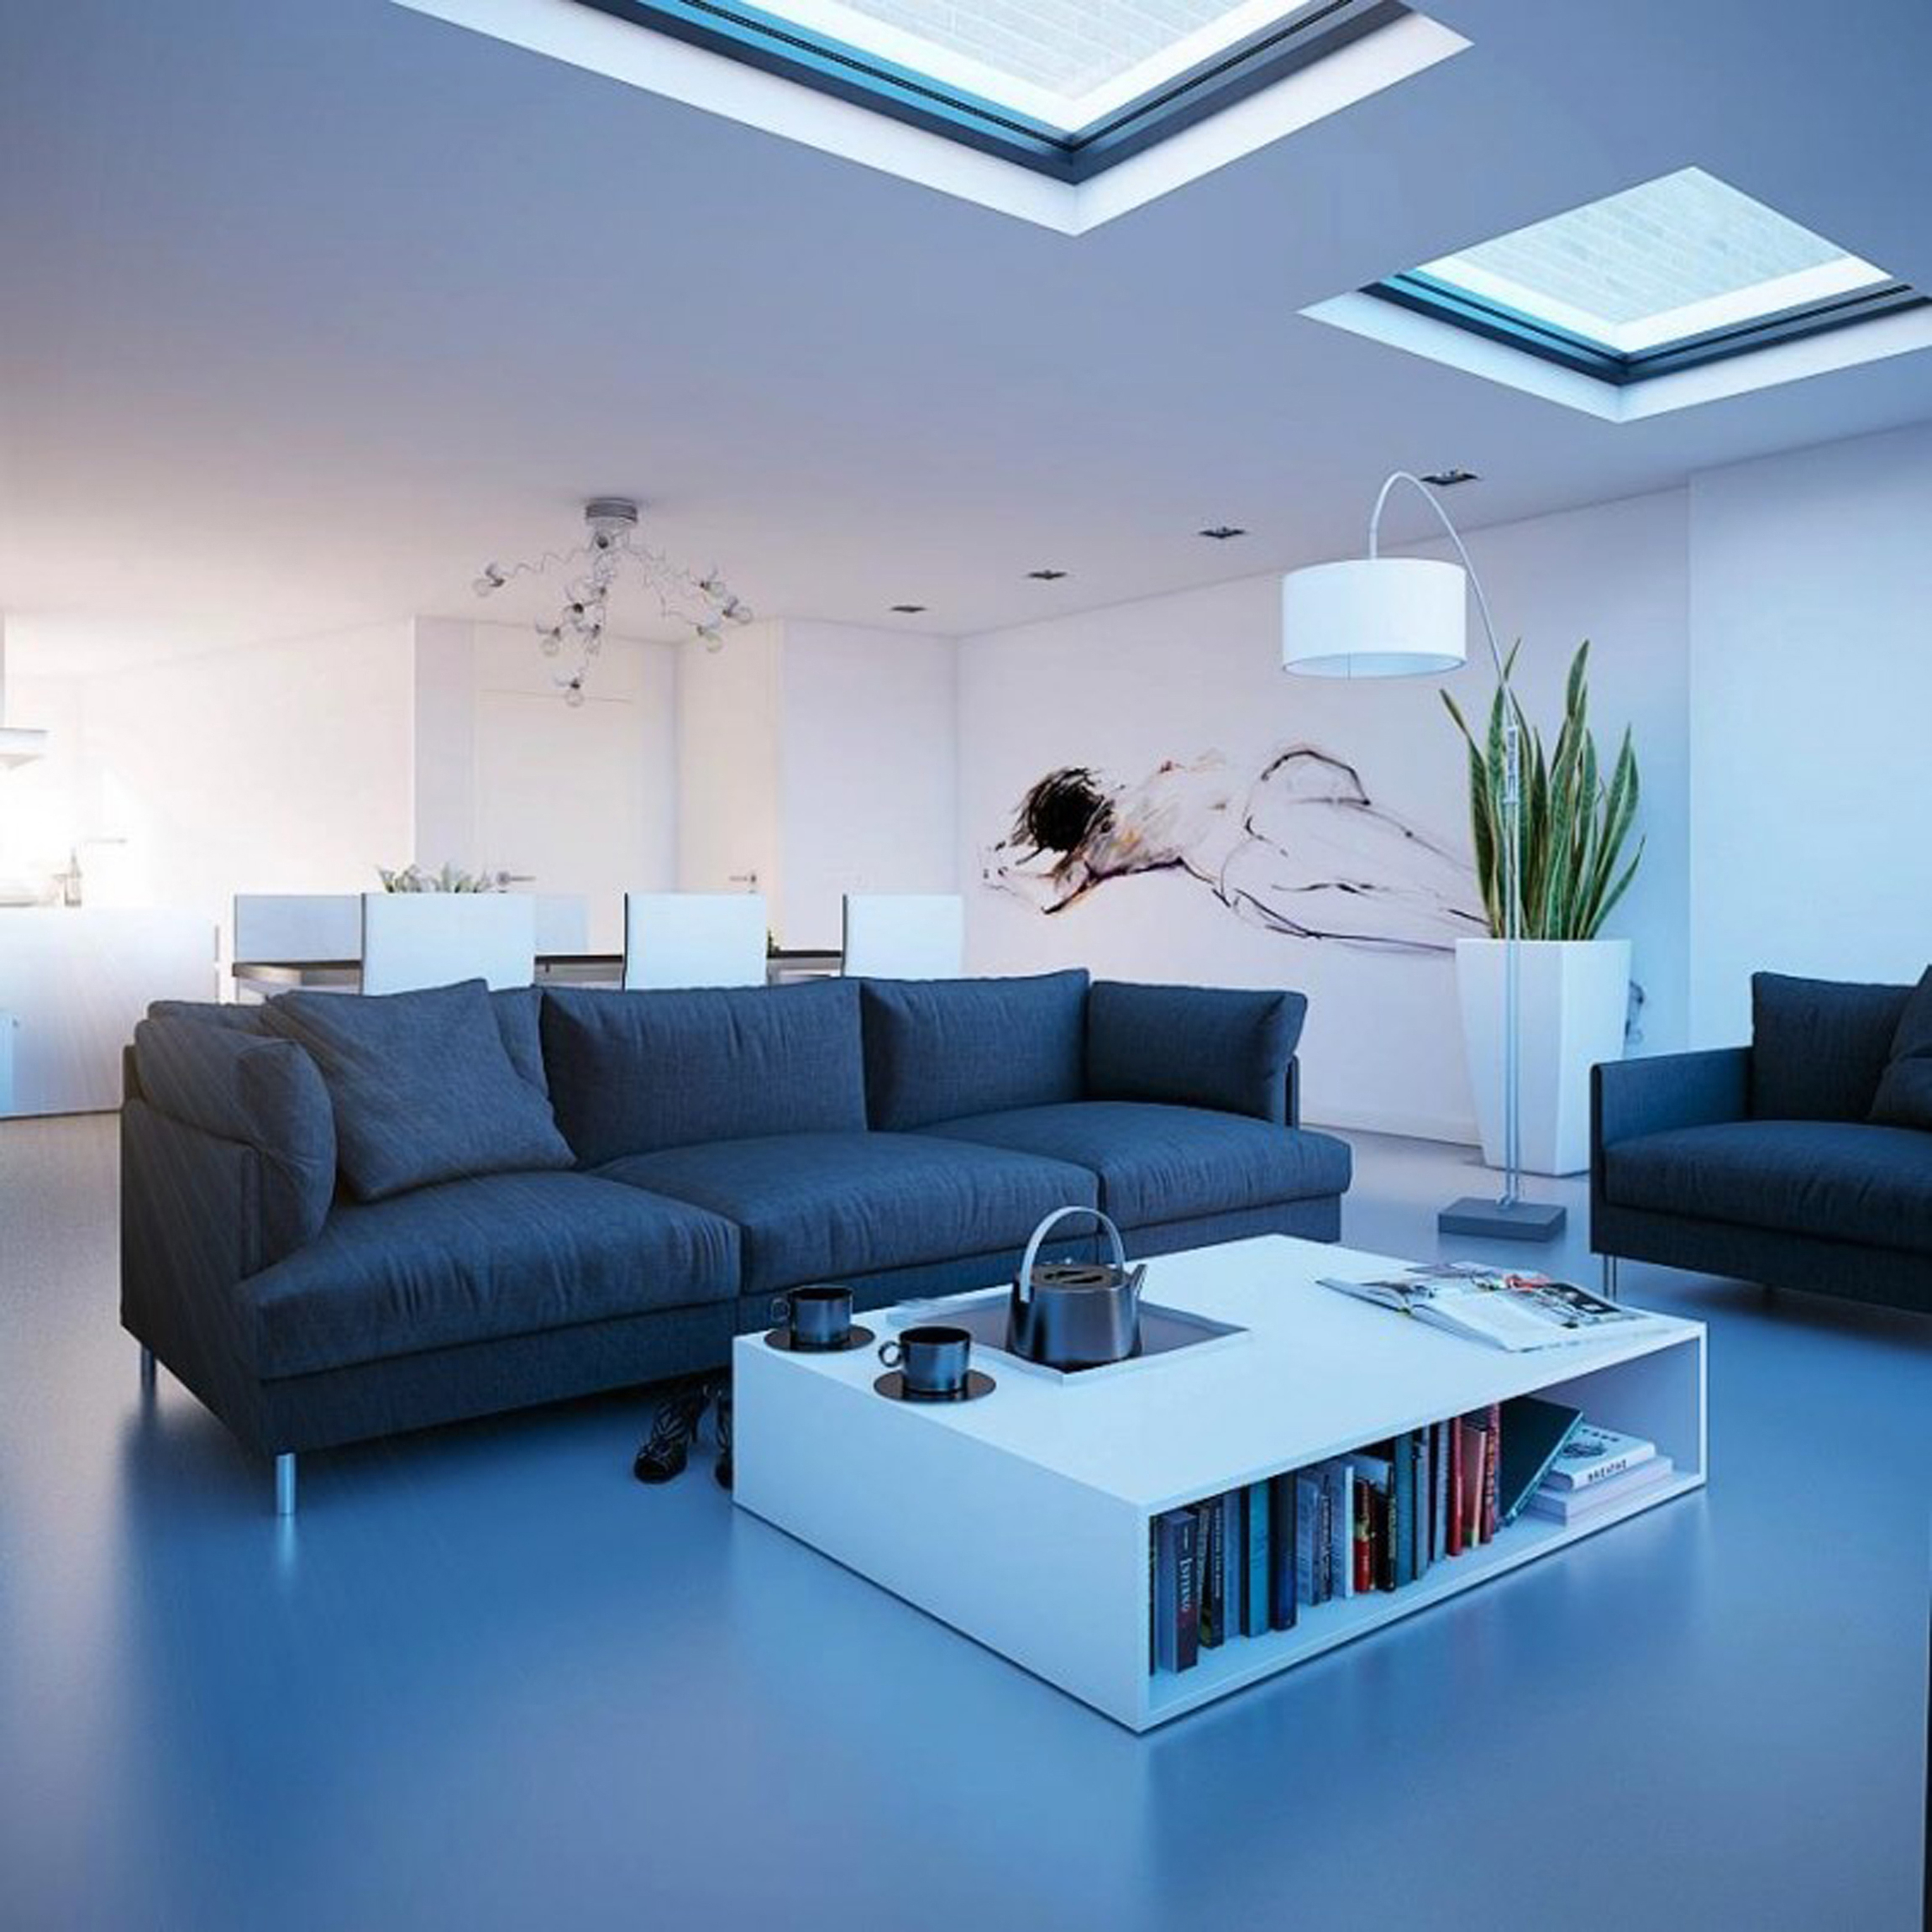 Modern Living Room Decoration With Black Sofas And Awesome White Living Table With Built In Electrical Stove Astonishing Living Rooms Design With Ceiling Window Skylight (View 22 of 30)